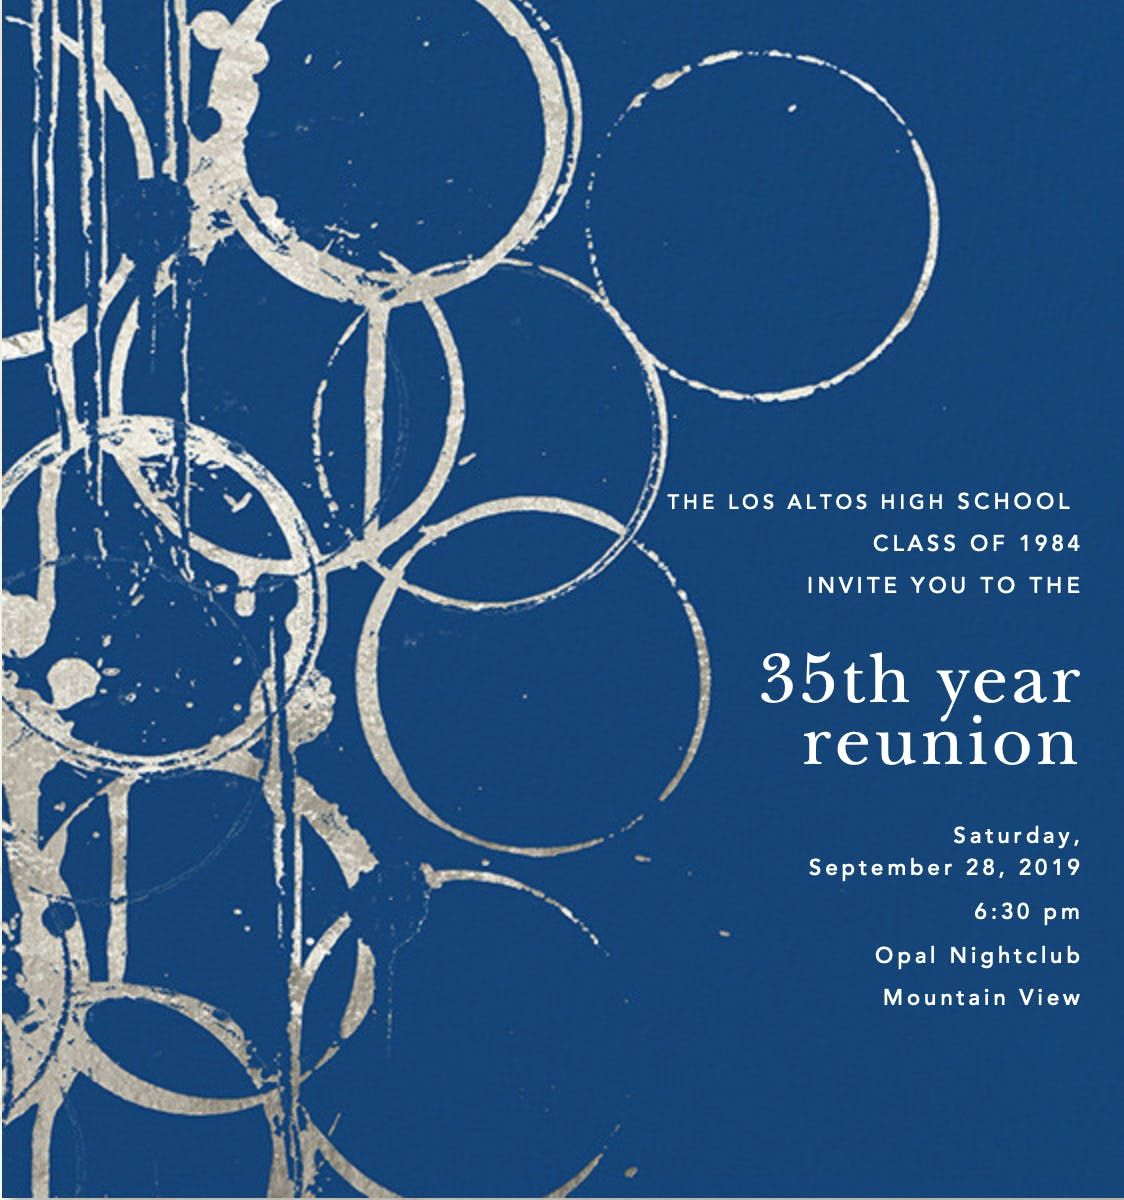 LAHS Class of 1984 Reunion